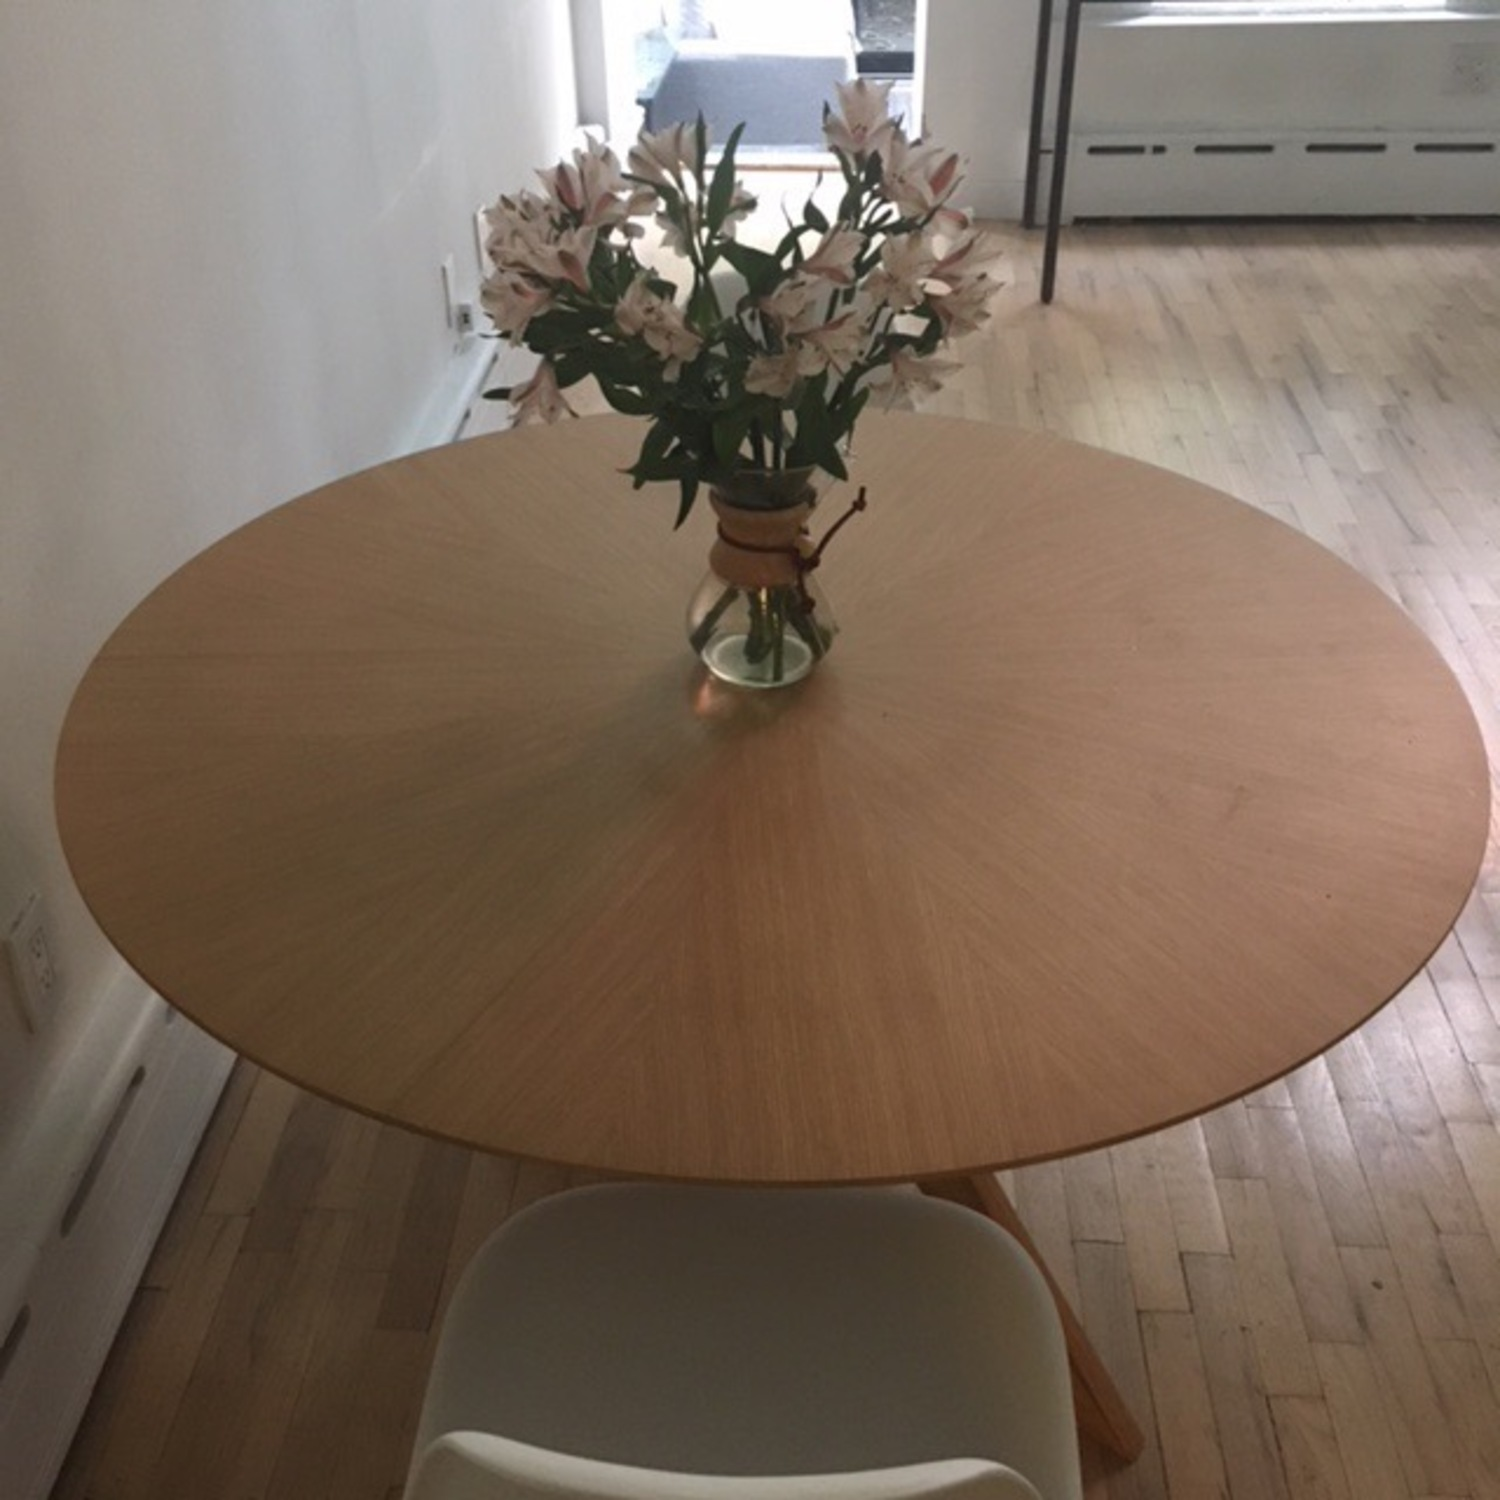 Scandinavian Stlye Dining Table and Chairs - image-8